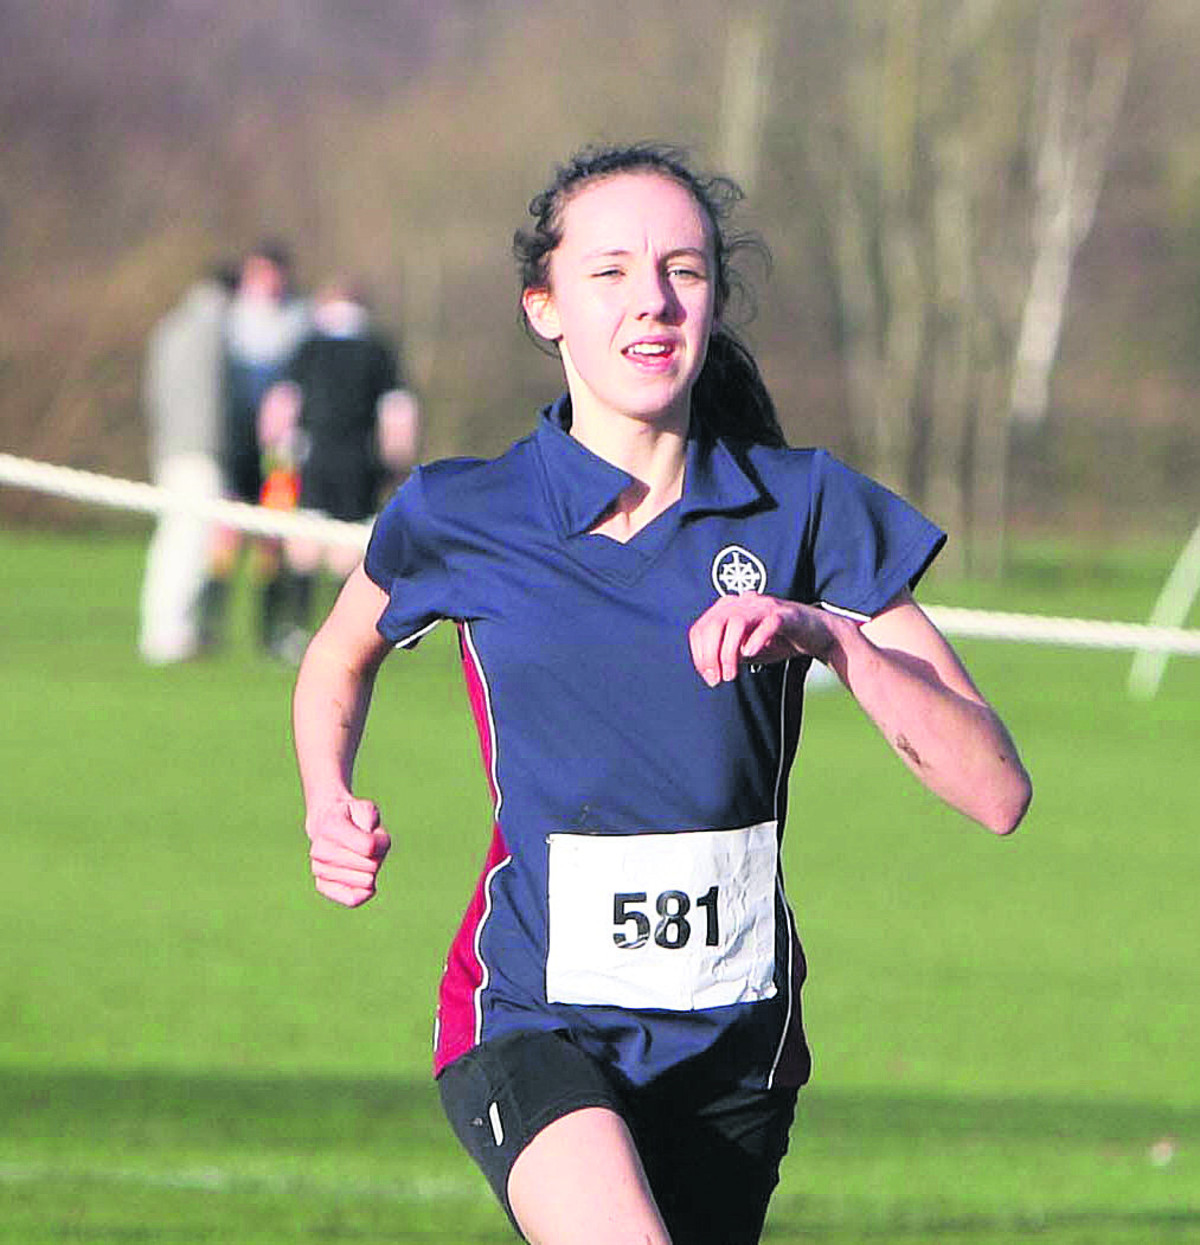 Abingdon's Fiona Bunn edged home by just one second to win at Milton Keynes